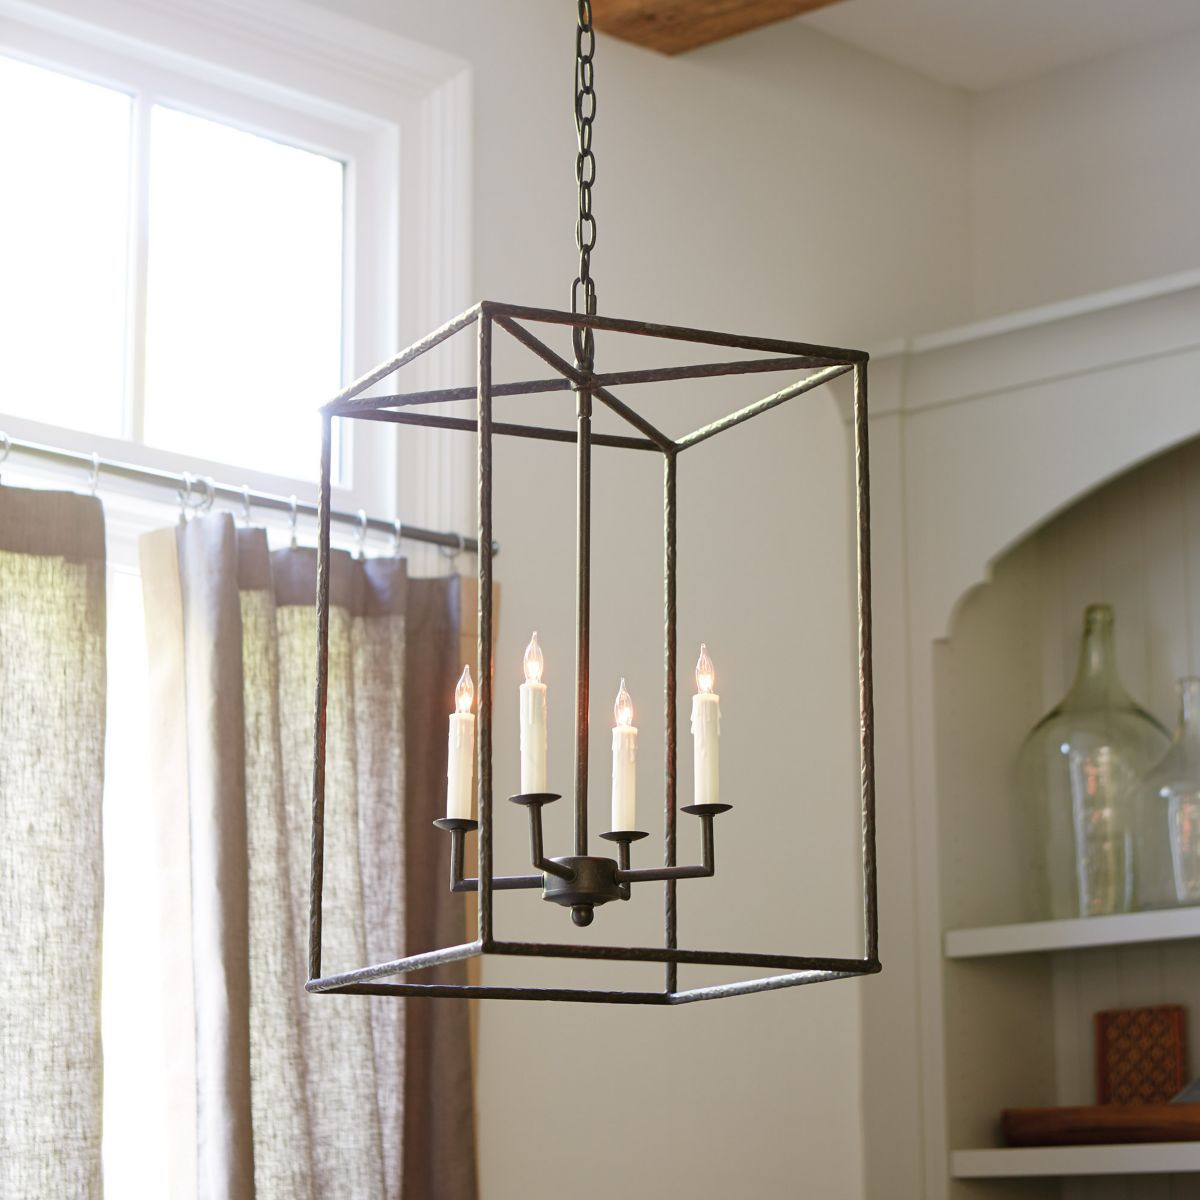 Hadley 4-Light Pendant Chandelier | Home In 2019 | Pendant with regard to Odie 8-Light Lantern Square / Rectangle Pendants (Image 12 of 30)